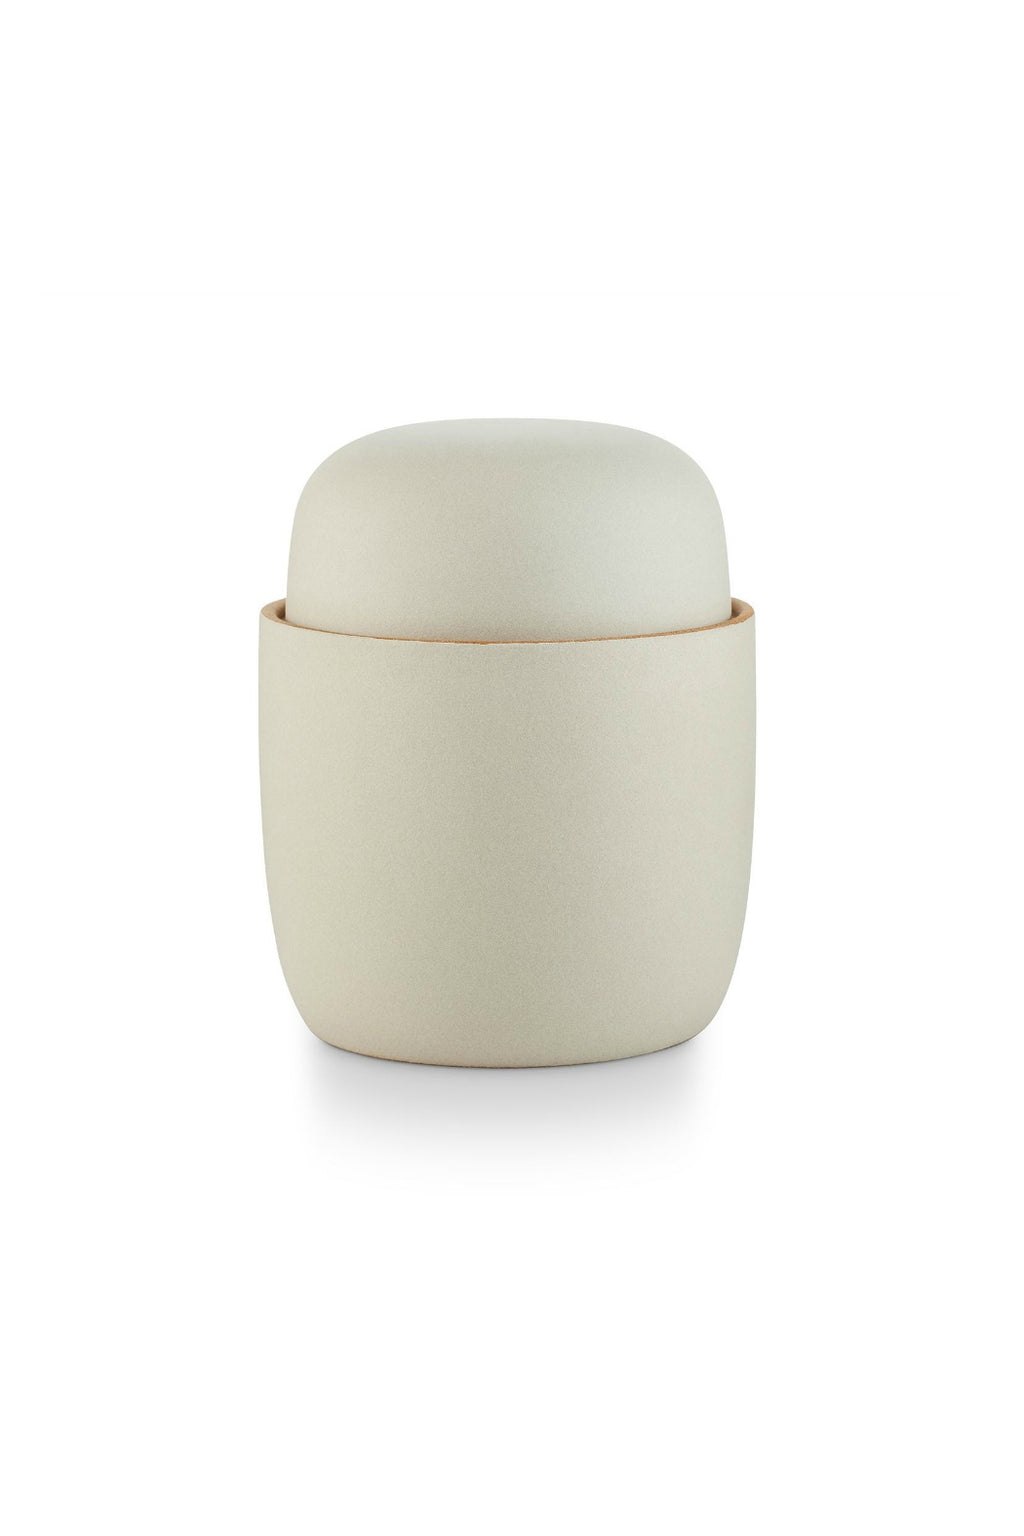 Illume Elemental Vetiver Sage Ceramic Candle